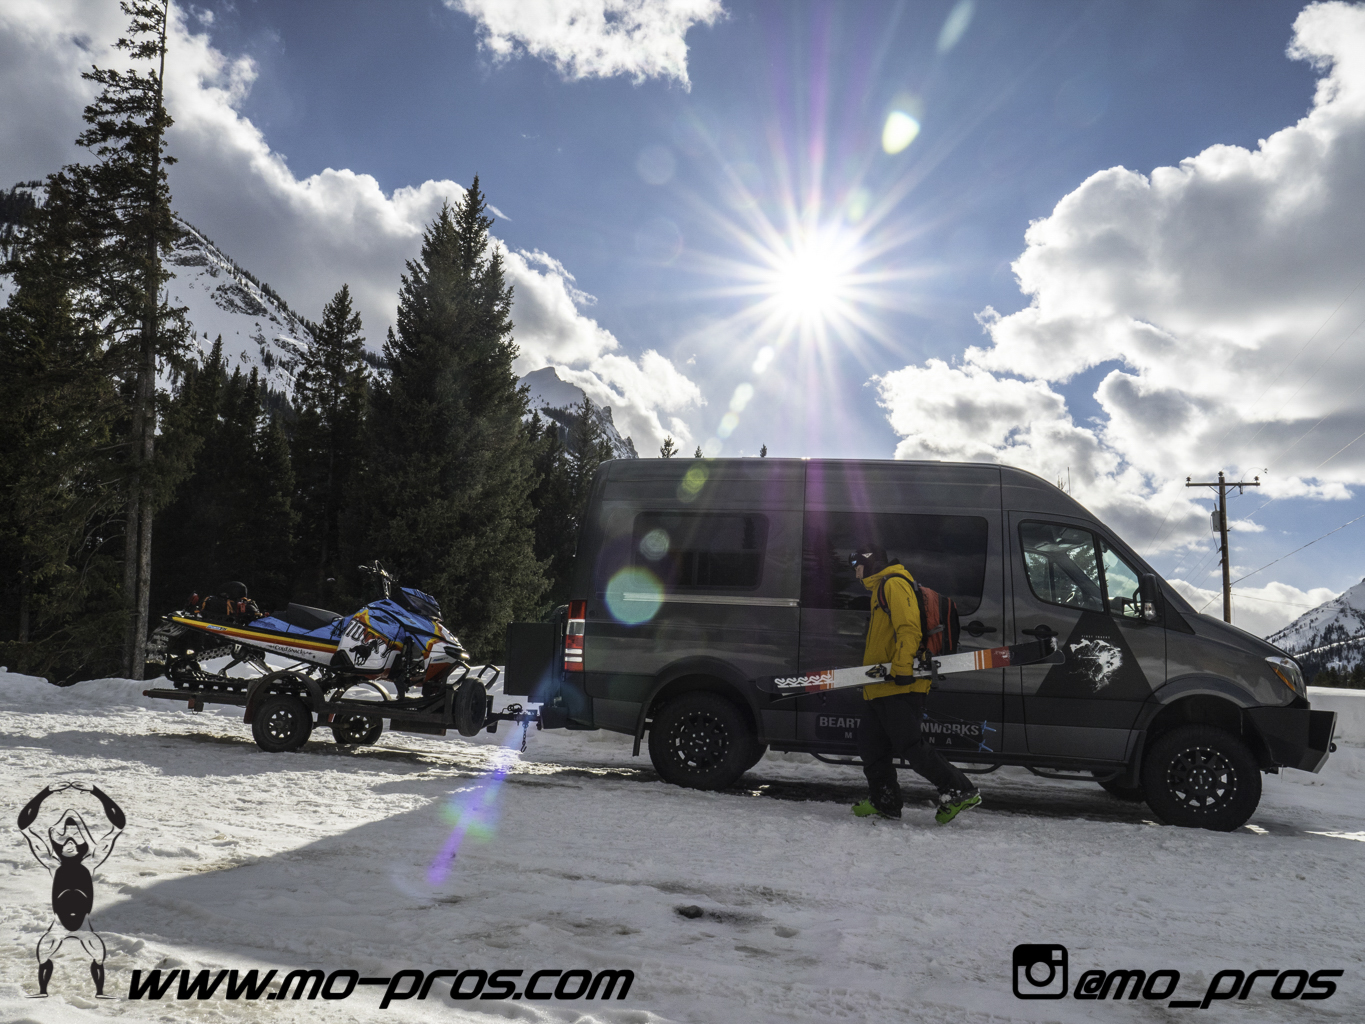 98_CFR rack_Cheetah Factory Racing_Snowboard rack_snowboard_snowmobile bag_Snowmobile_timbersled bag_gas Rack_Gear_Gun Rack_LinQ Snowboard Ski_Ski_Snowbike_Timbersled Rack_Tsaina Rack_Snowboarding_Ti.jpg